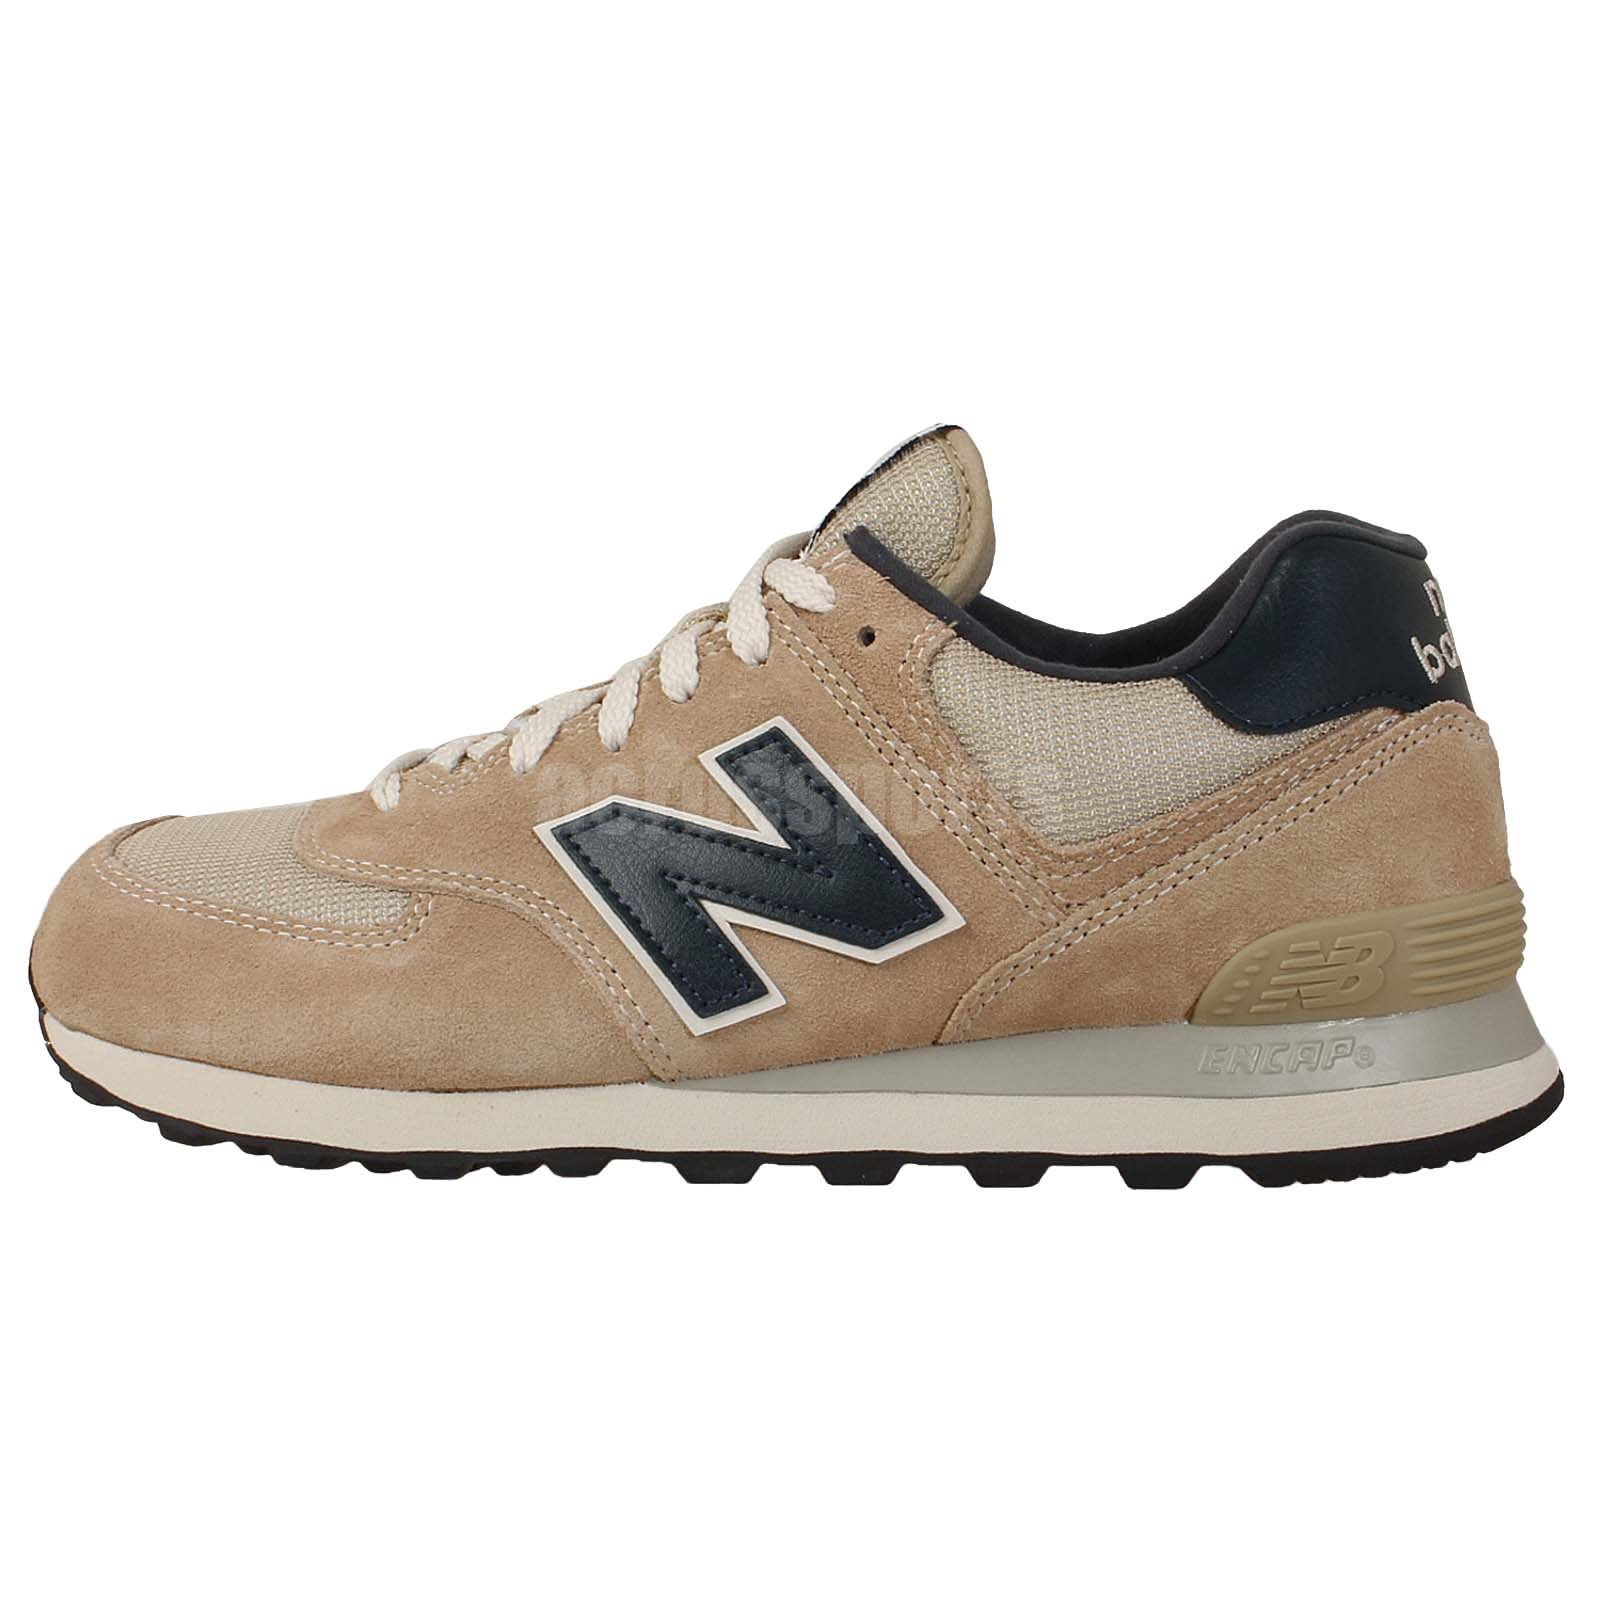 new balance ml574vbn d light brown mens retro running shoes sneakers 574 ebay. Black Bedroom Furniture Sets. Home Design Ideas